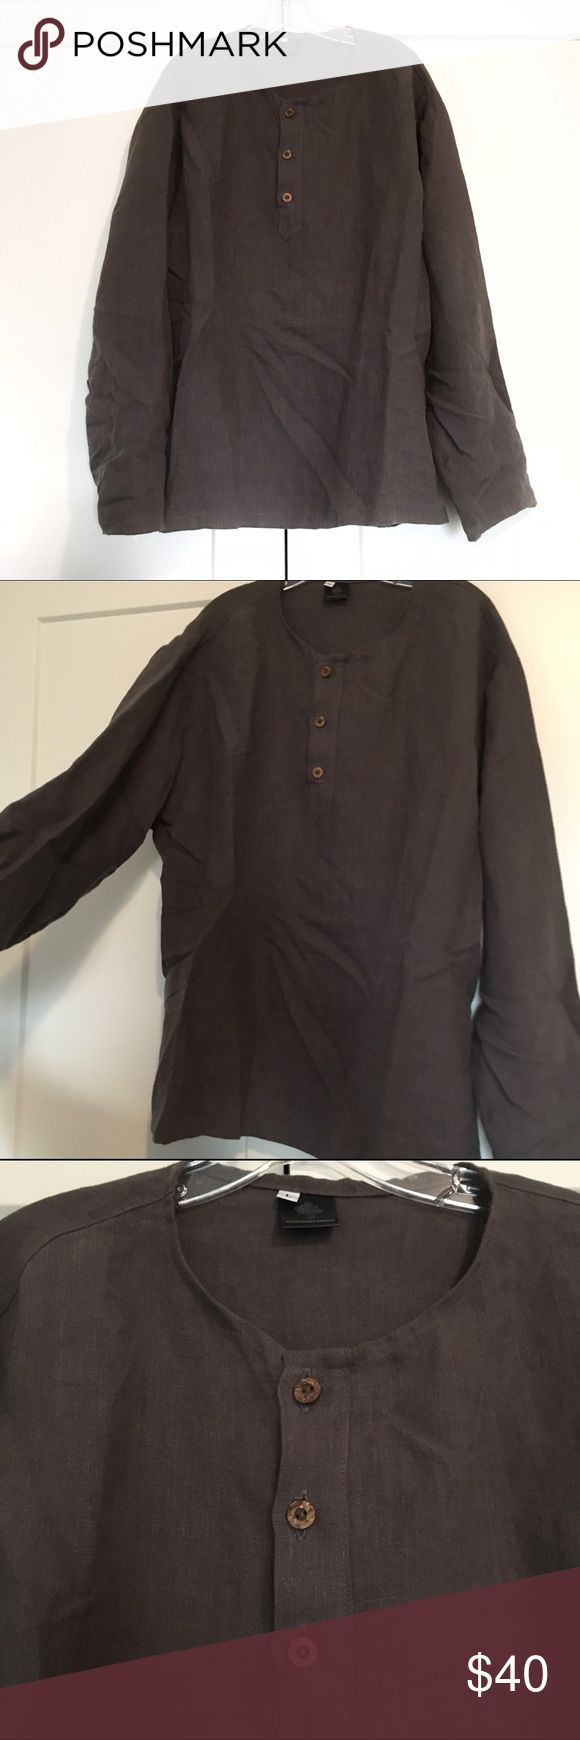 Men's Eco-friendly Hemp Shirt Not listed brand* High quality hand crafted shirt by Intertwined Designs / see their Etsy for their shop. Earth friendly and organically made in the USA. Size L. Breathable but not thin and cheap. Sleeves look good rolled up. Just needs a steam/ironing to get wrinkles out! Bundle to save! Price is lowest✨ Vans Shirts Casual Button Down Shirts